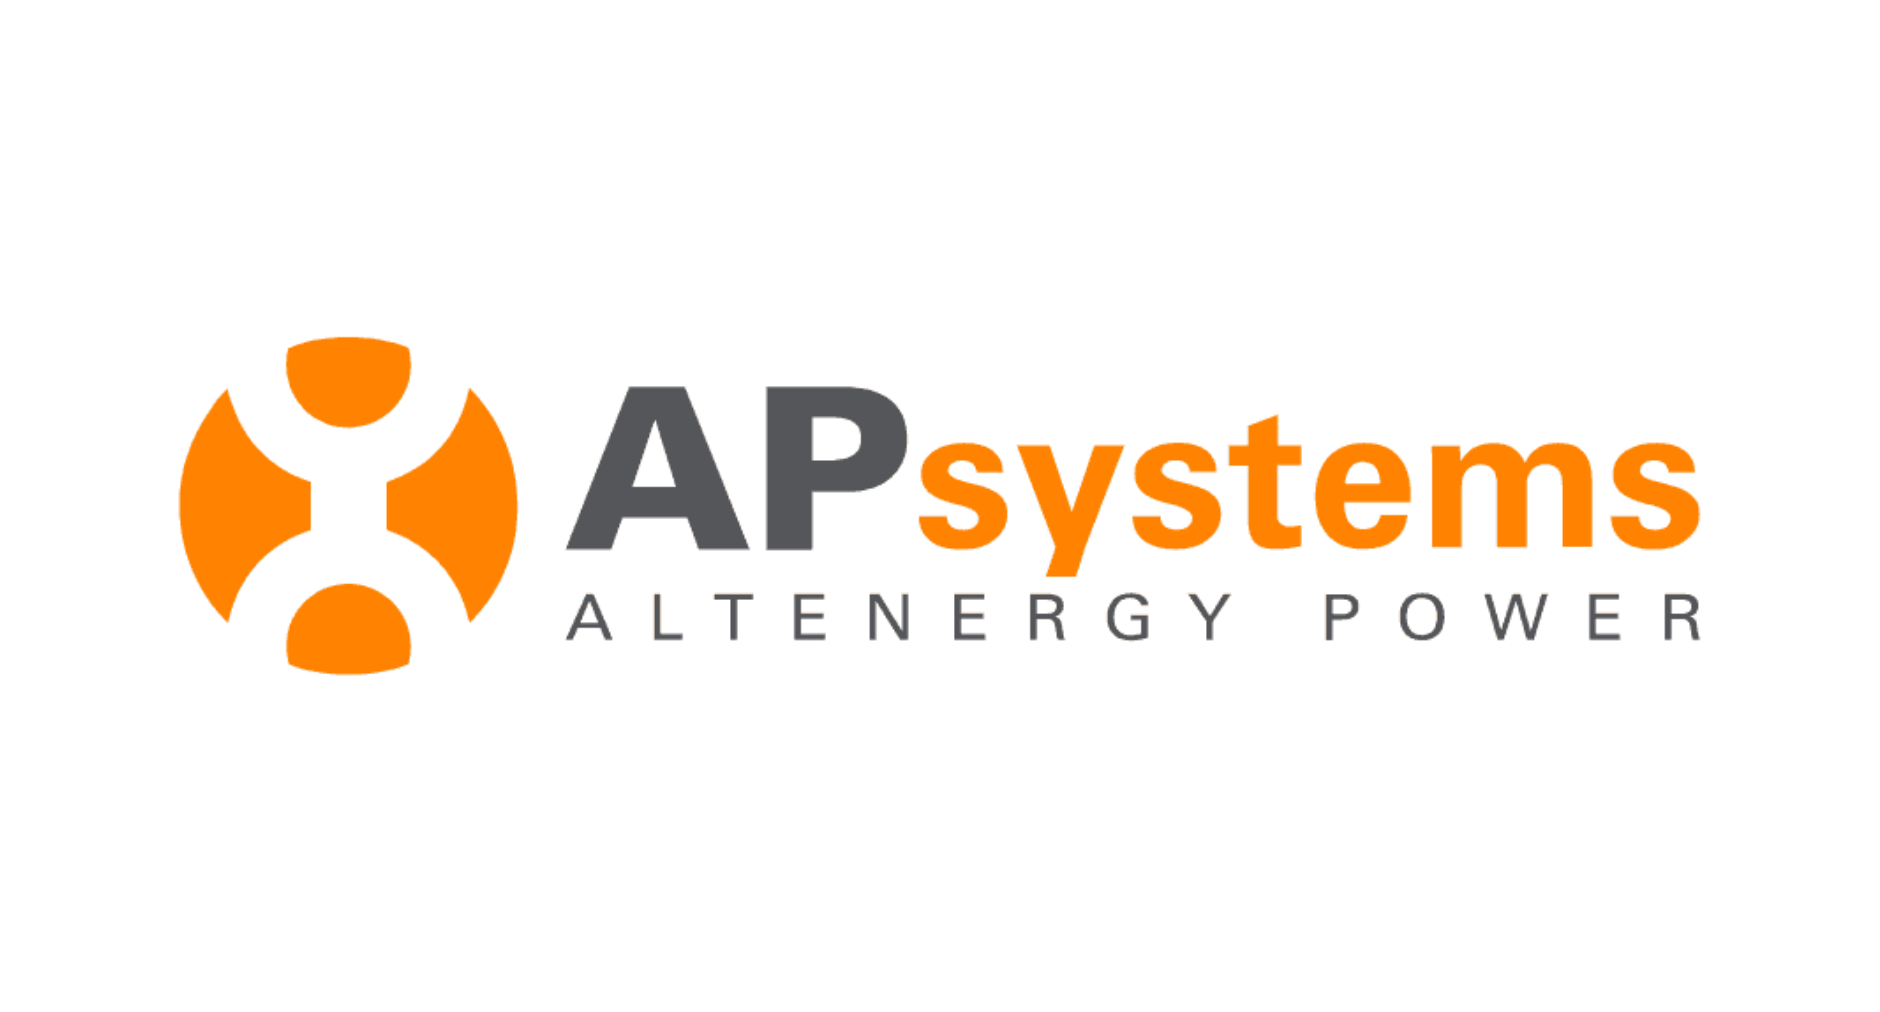 Introducing APsystems microinverter technology